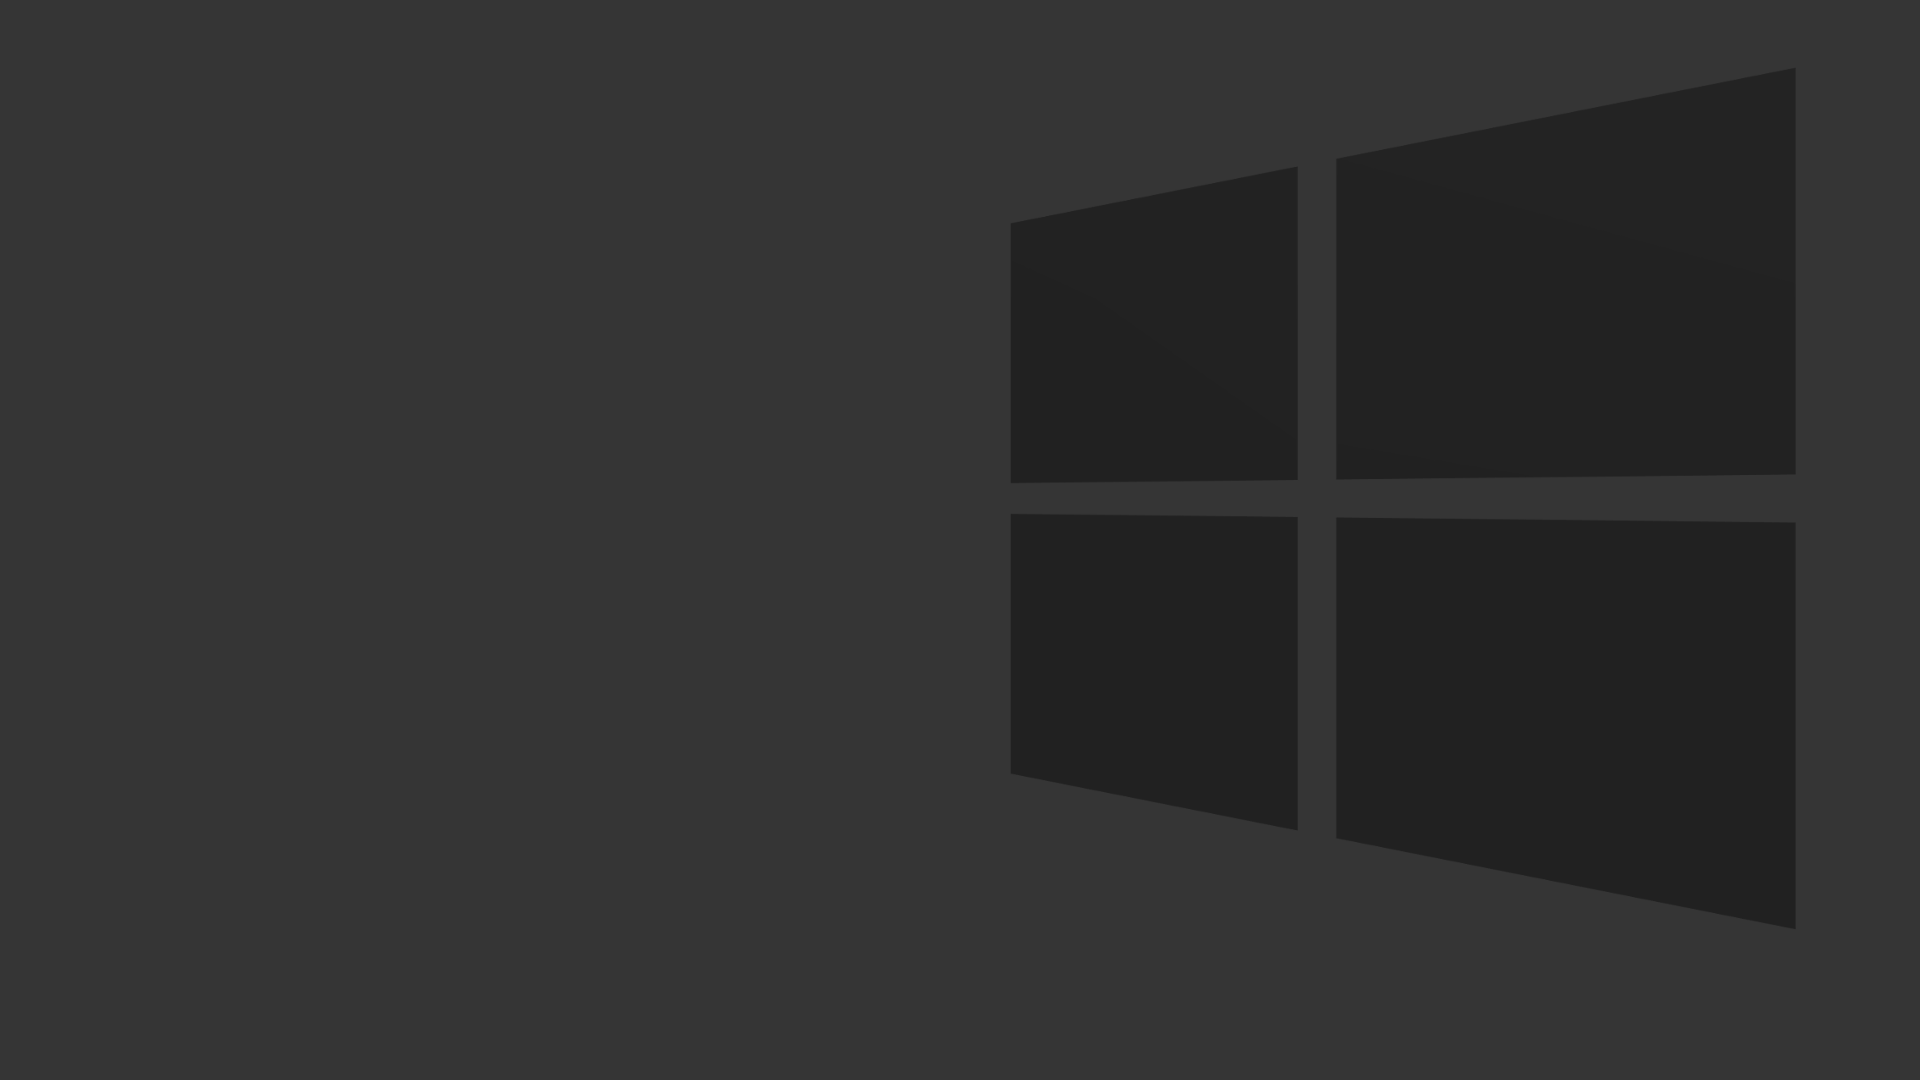 Microsoft hd wallpapers for 10 40 window definition